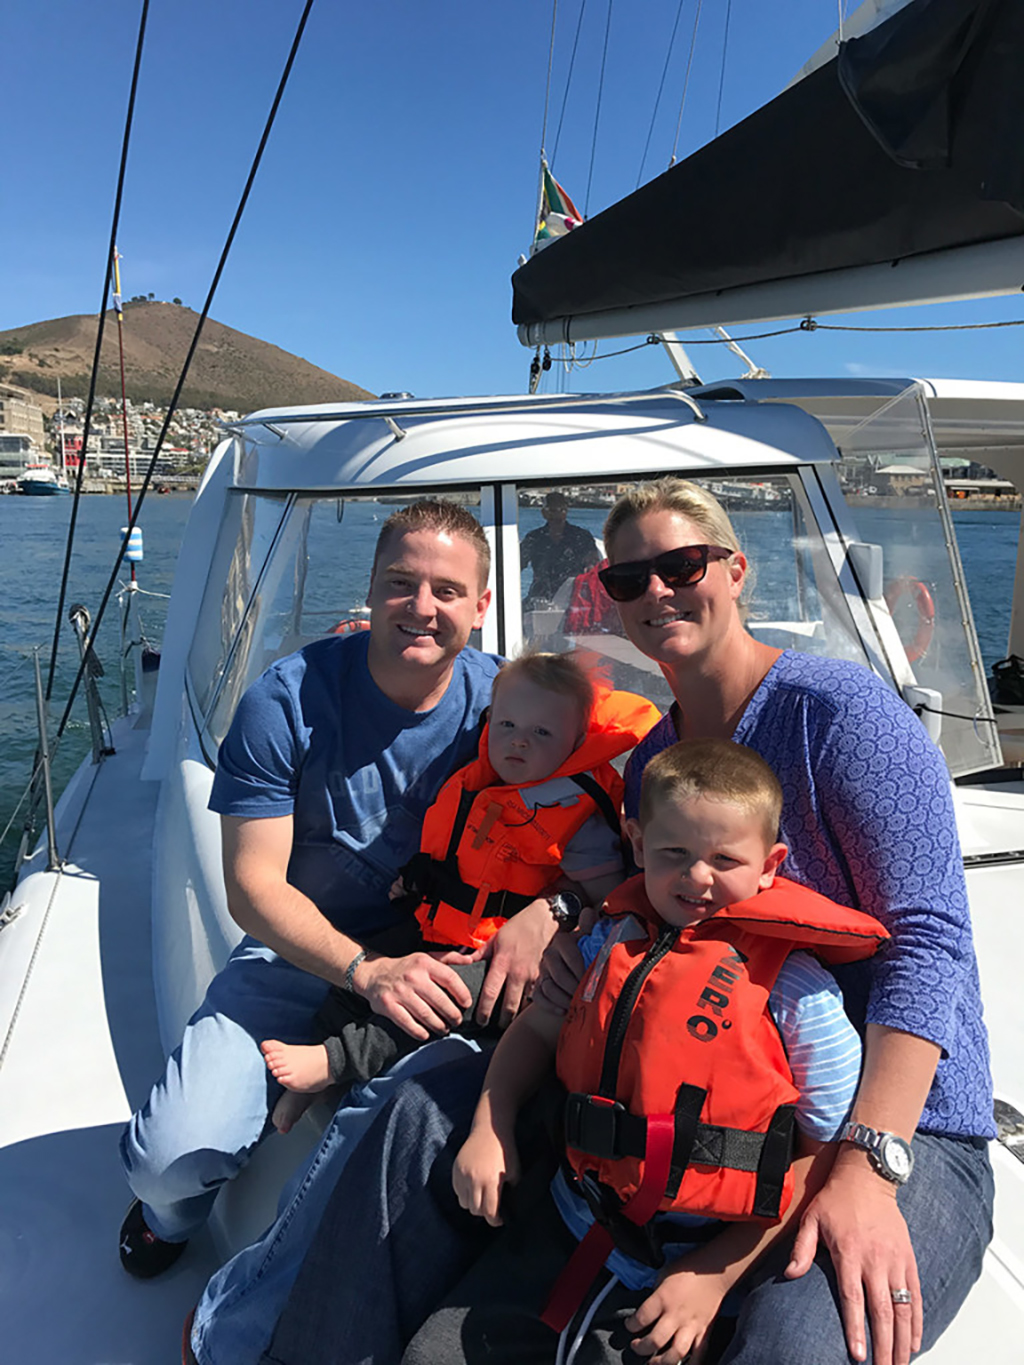 James Basson with his family on a boat